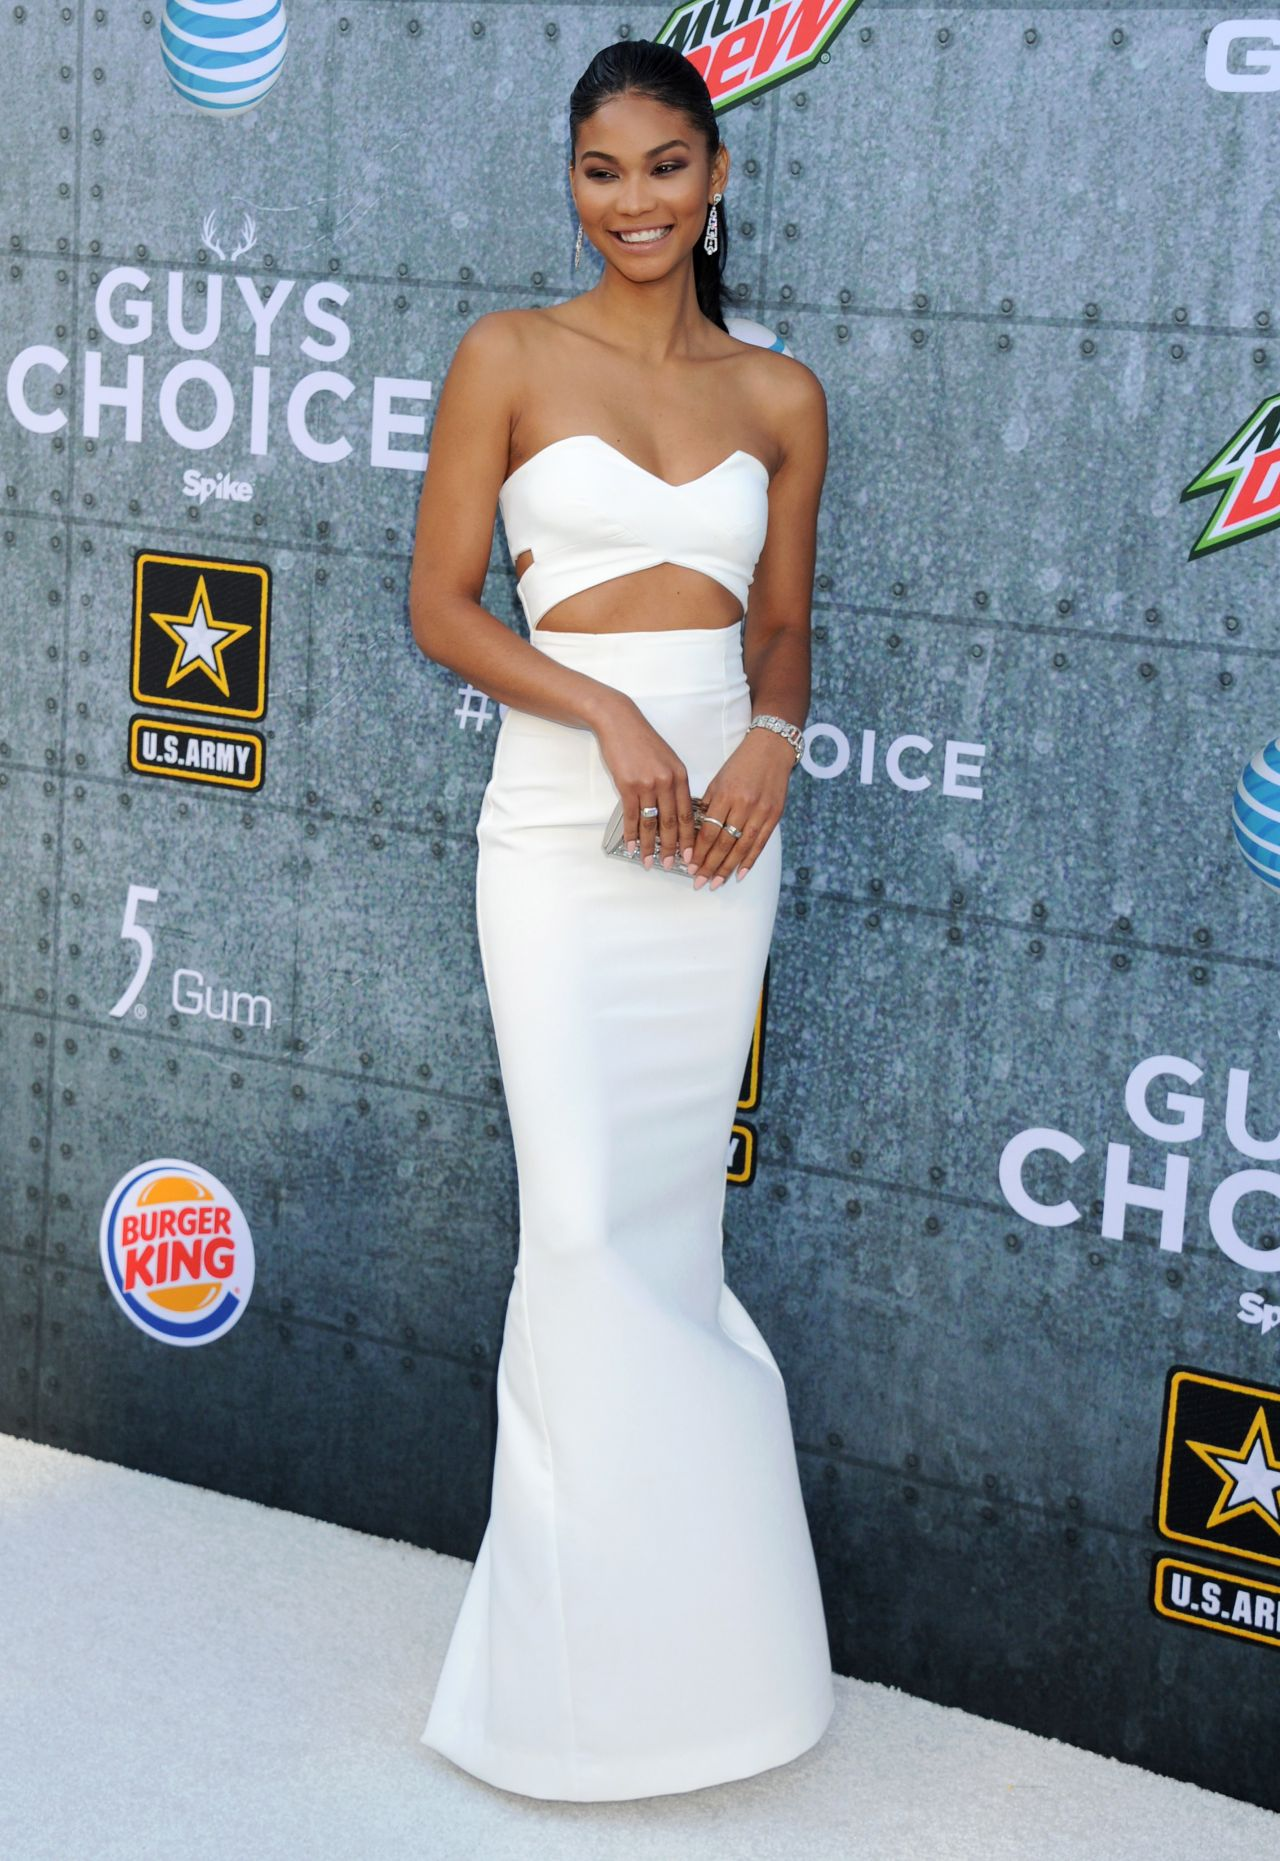 chanel-iman-spike-tv-s-2015-guys-choice-in-culver-city_